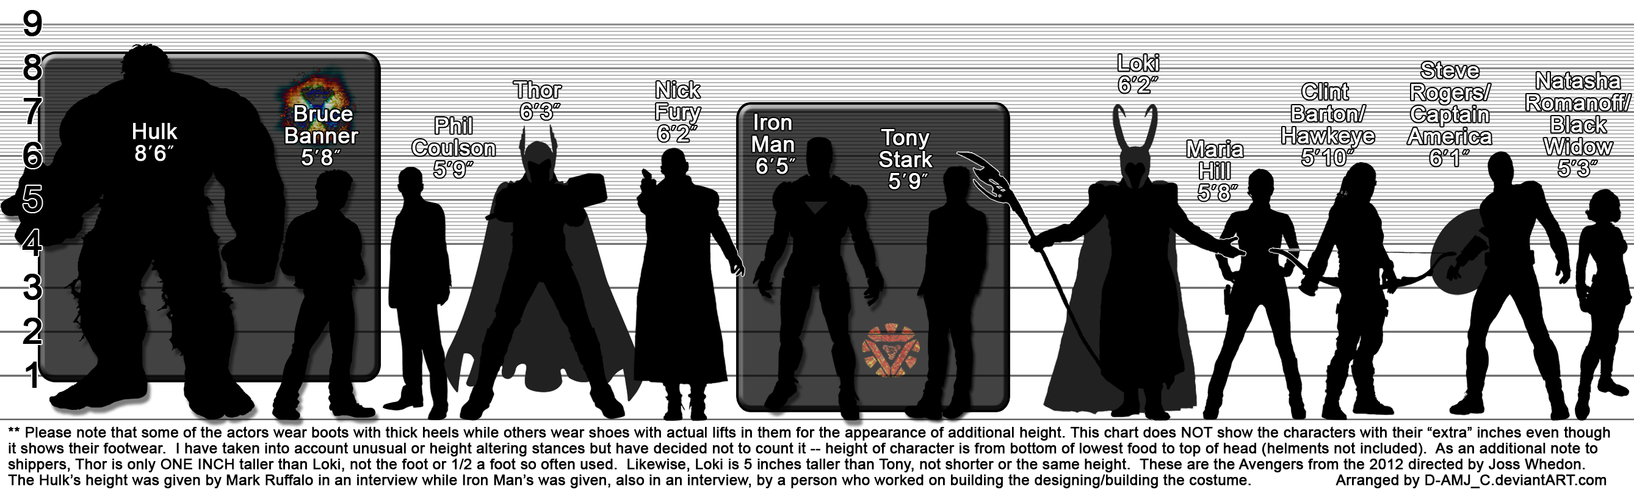 The Avengers (2012) Height Chart ~ CORRECTED by D-AMJ-C